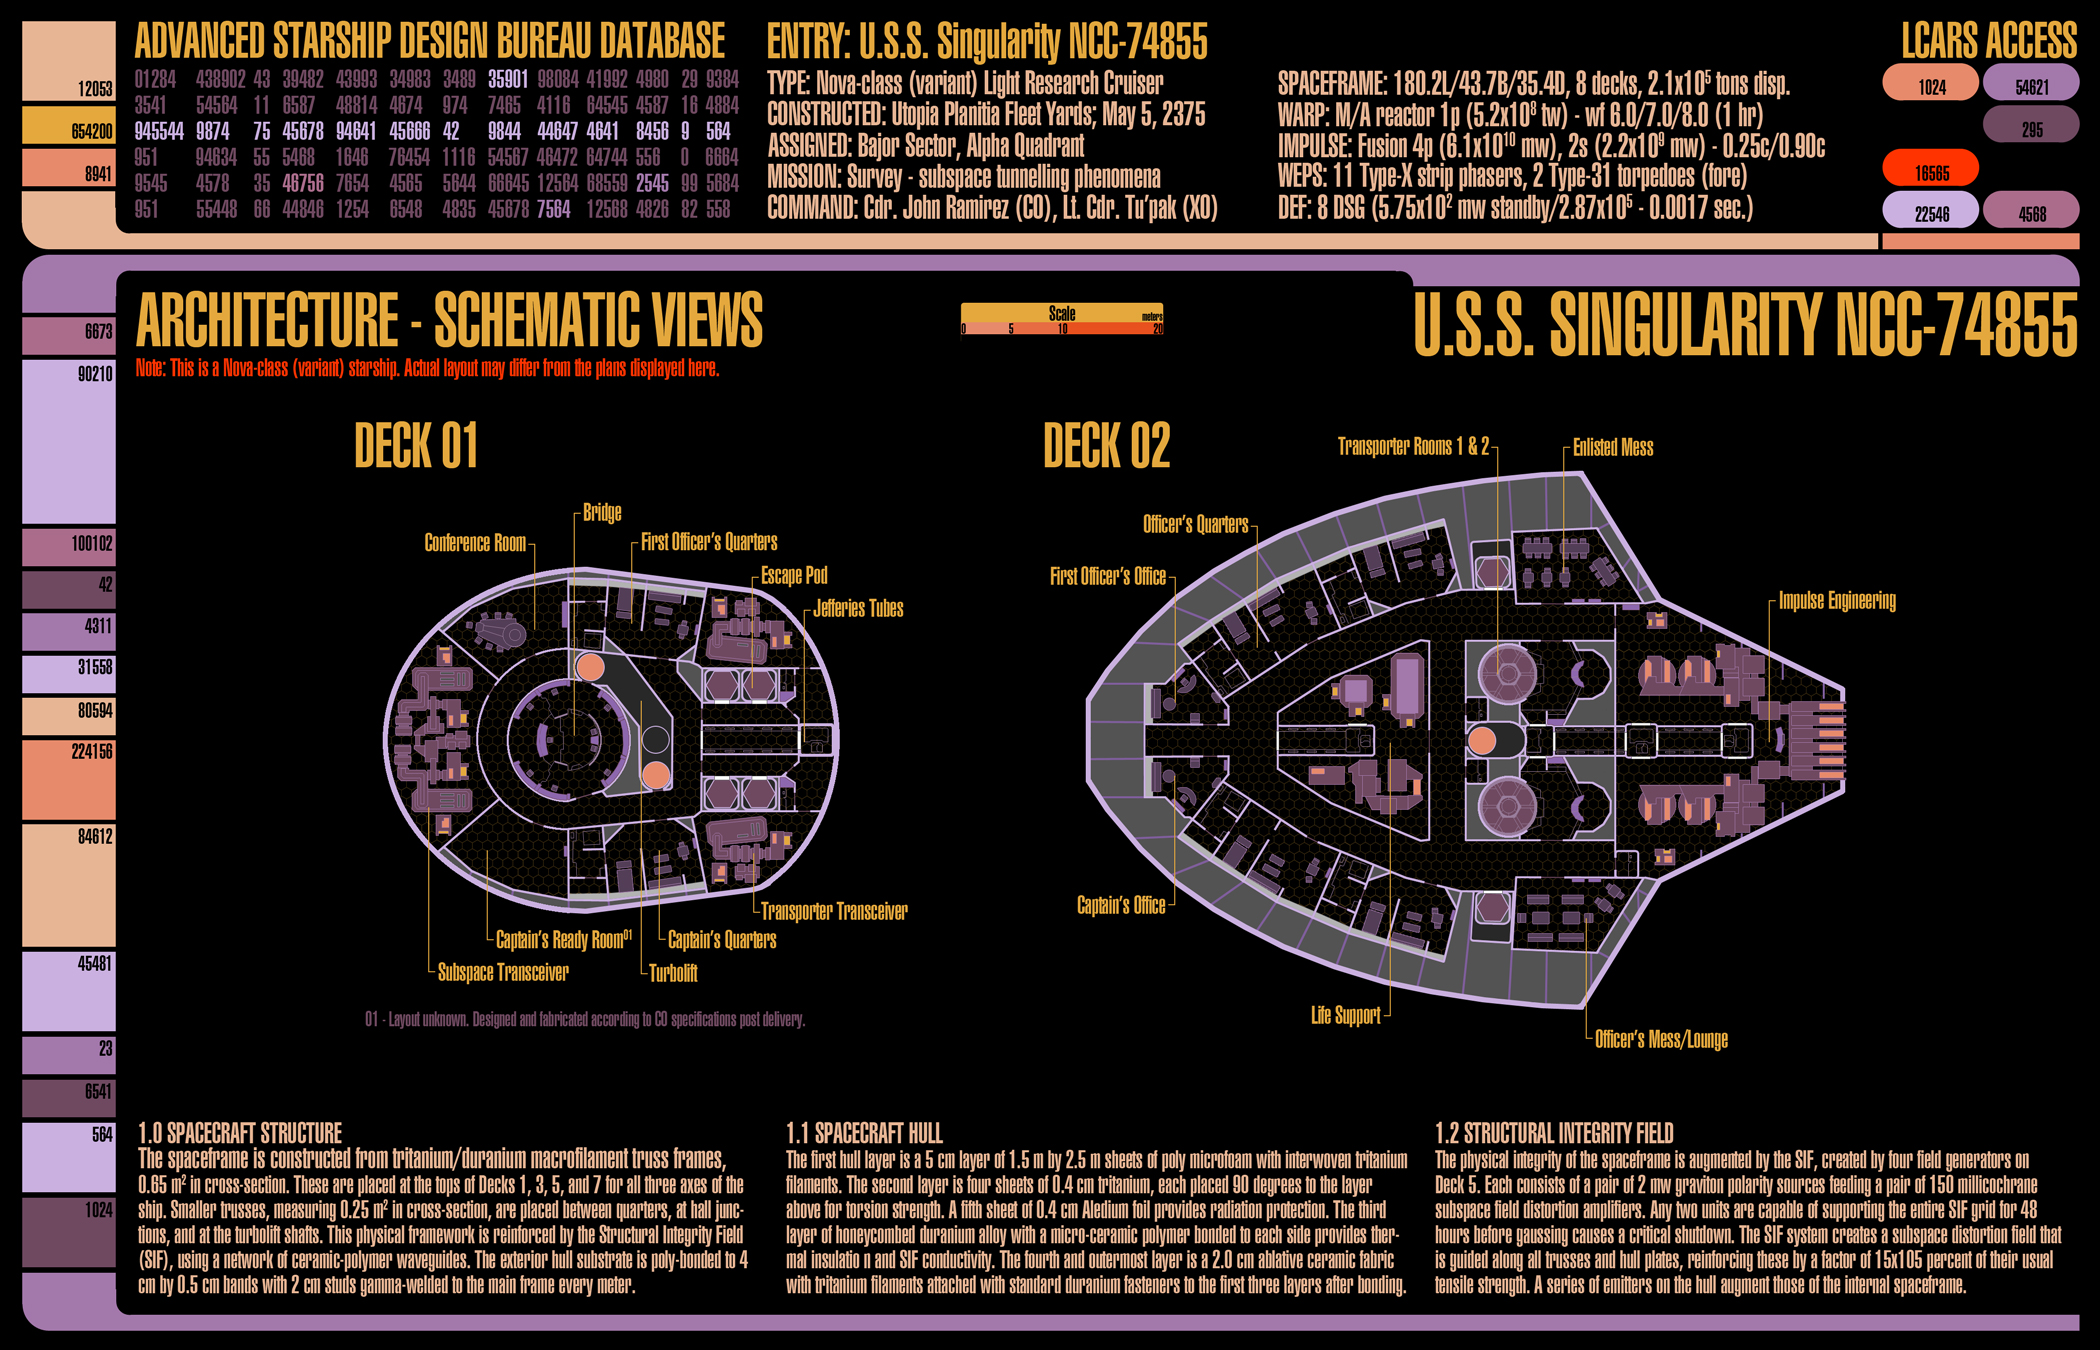 U.S.S. Singularity (NCC-74855) - deckplans for an upcoming Star Trek (TNG-era) game I'll be running using GURPS. These are decks 1 and 2.